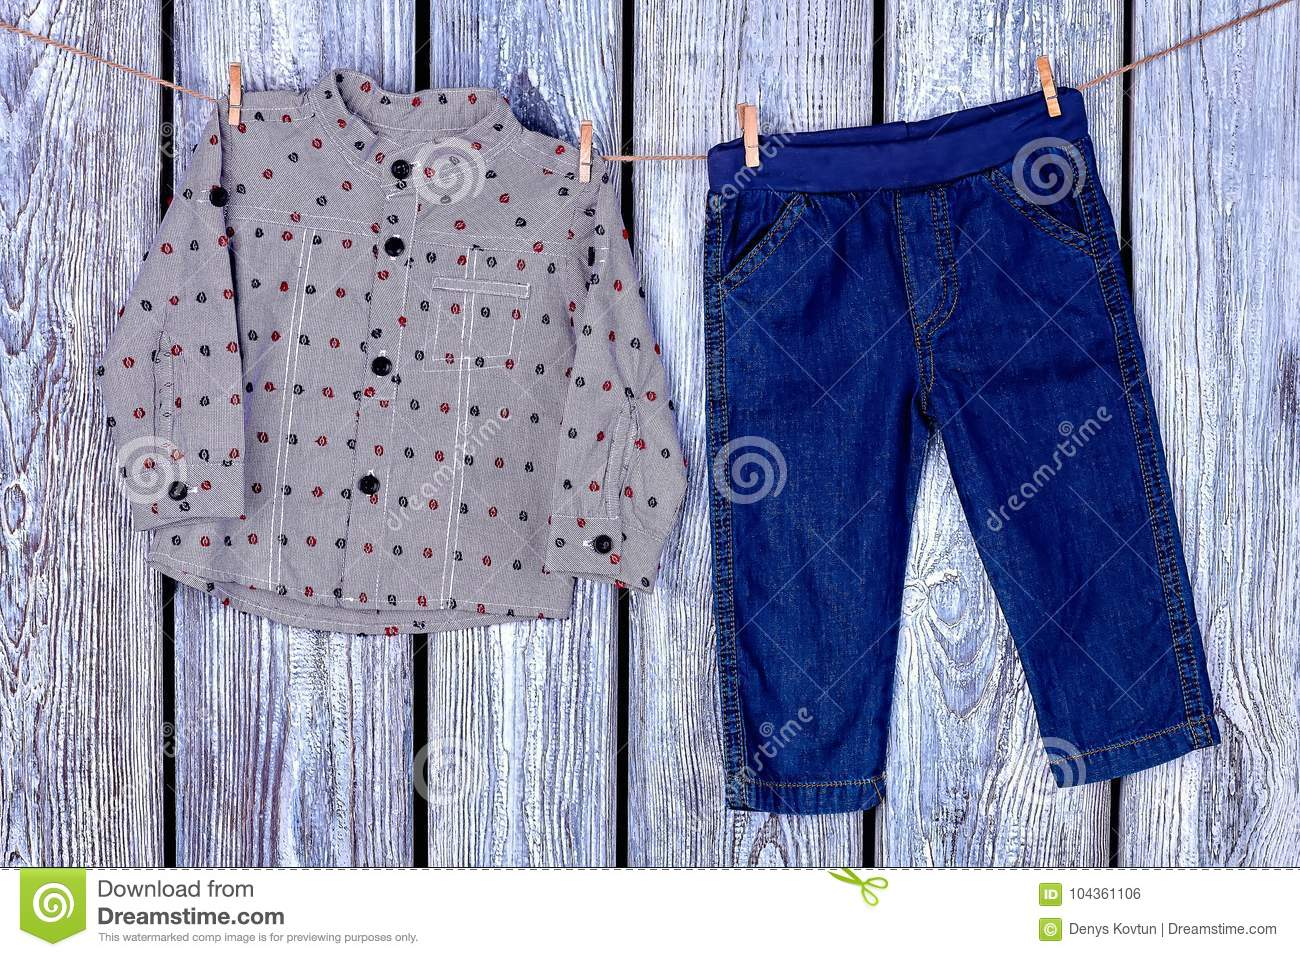 ed672ab51a55 Baby Boy Clothes Hanging On Rope. Stock Photo - Image of apparel ...